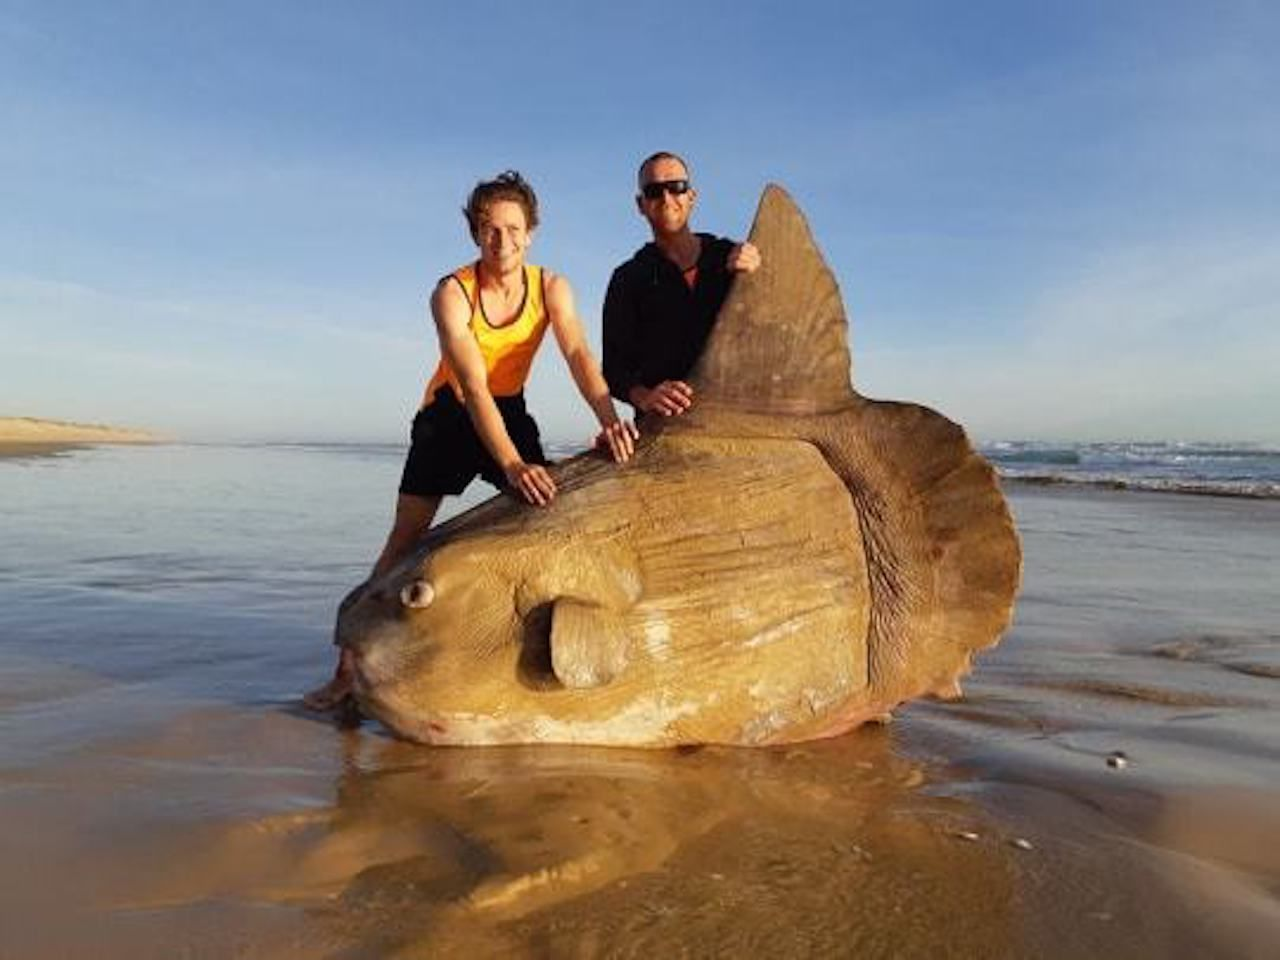 Huge sunfish washes up in Australia